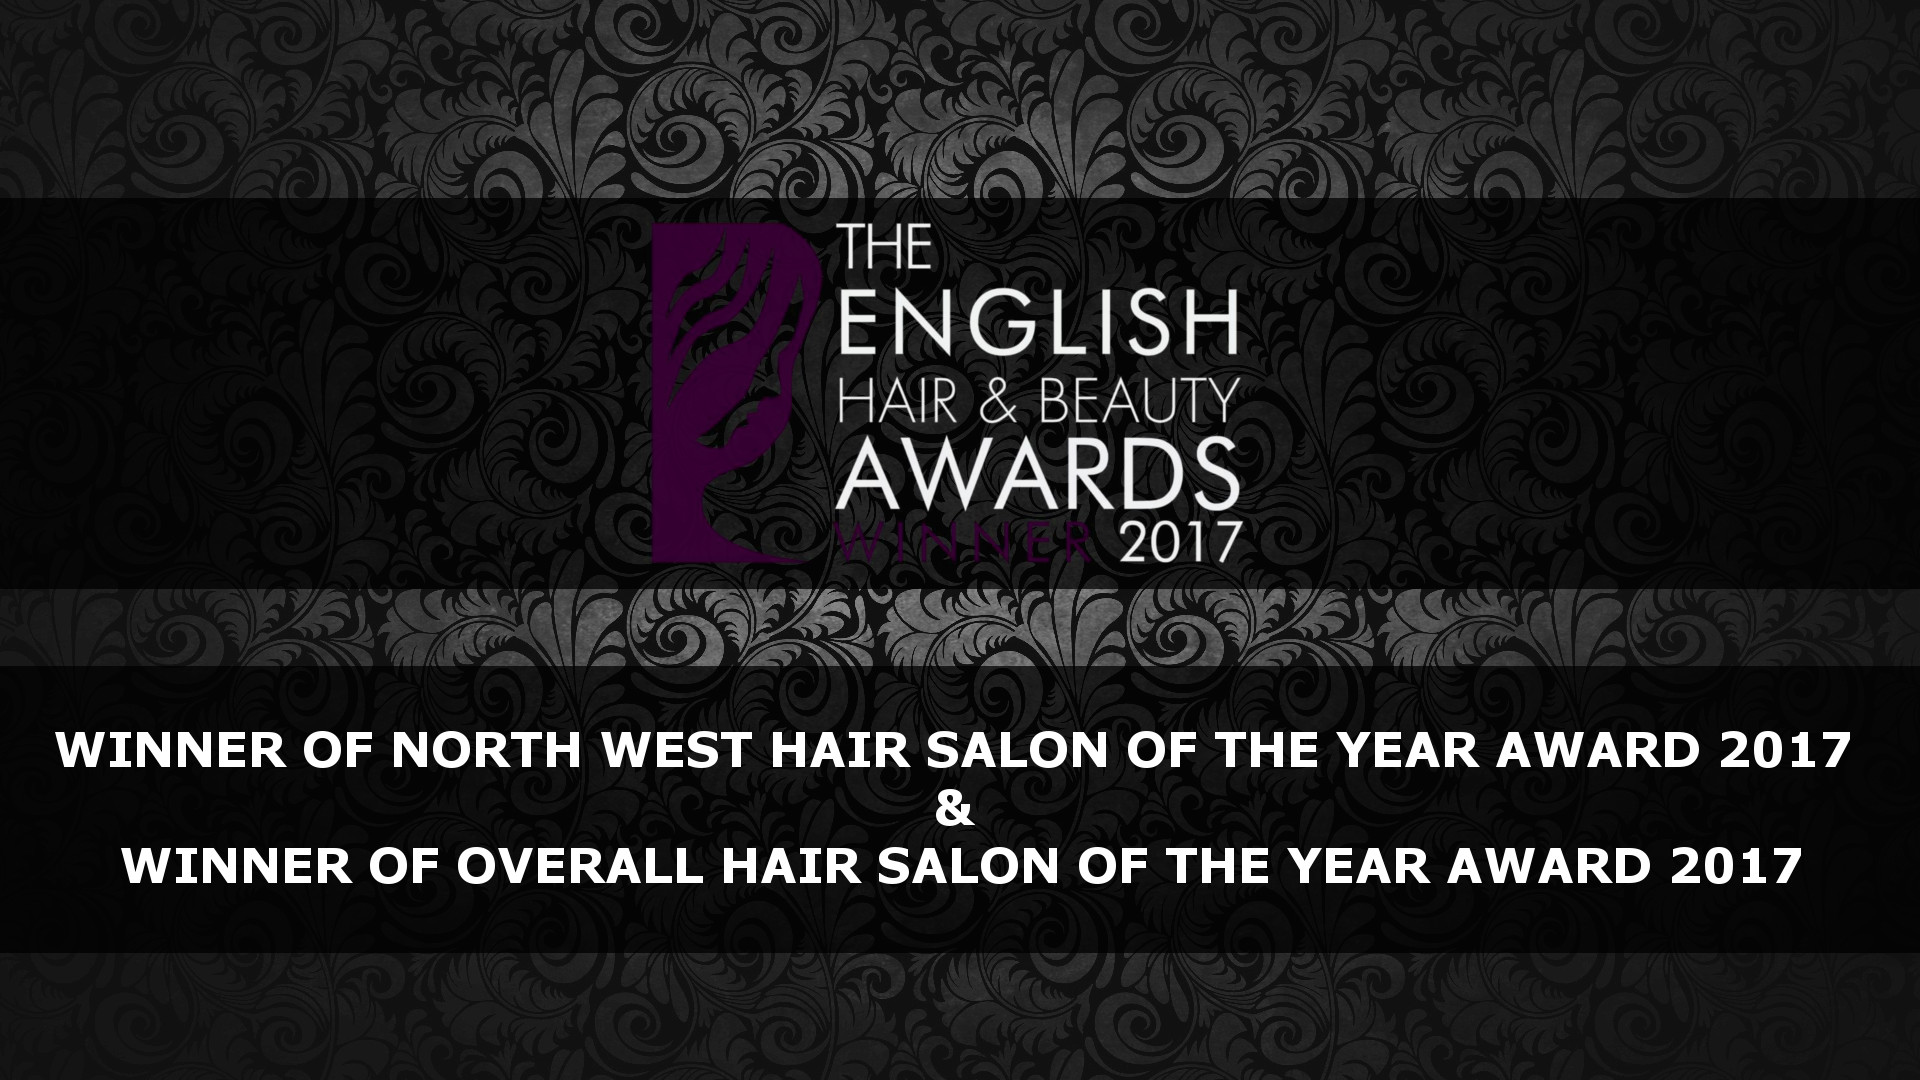 2017 Hair and Beauty Awards Winner